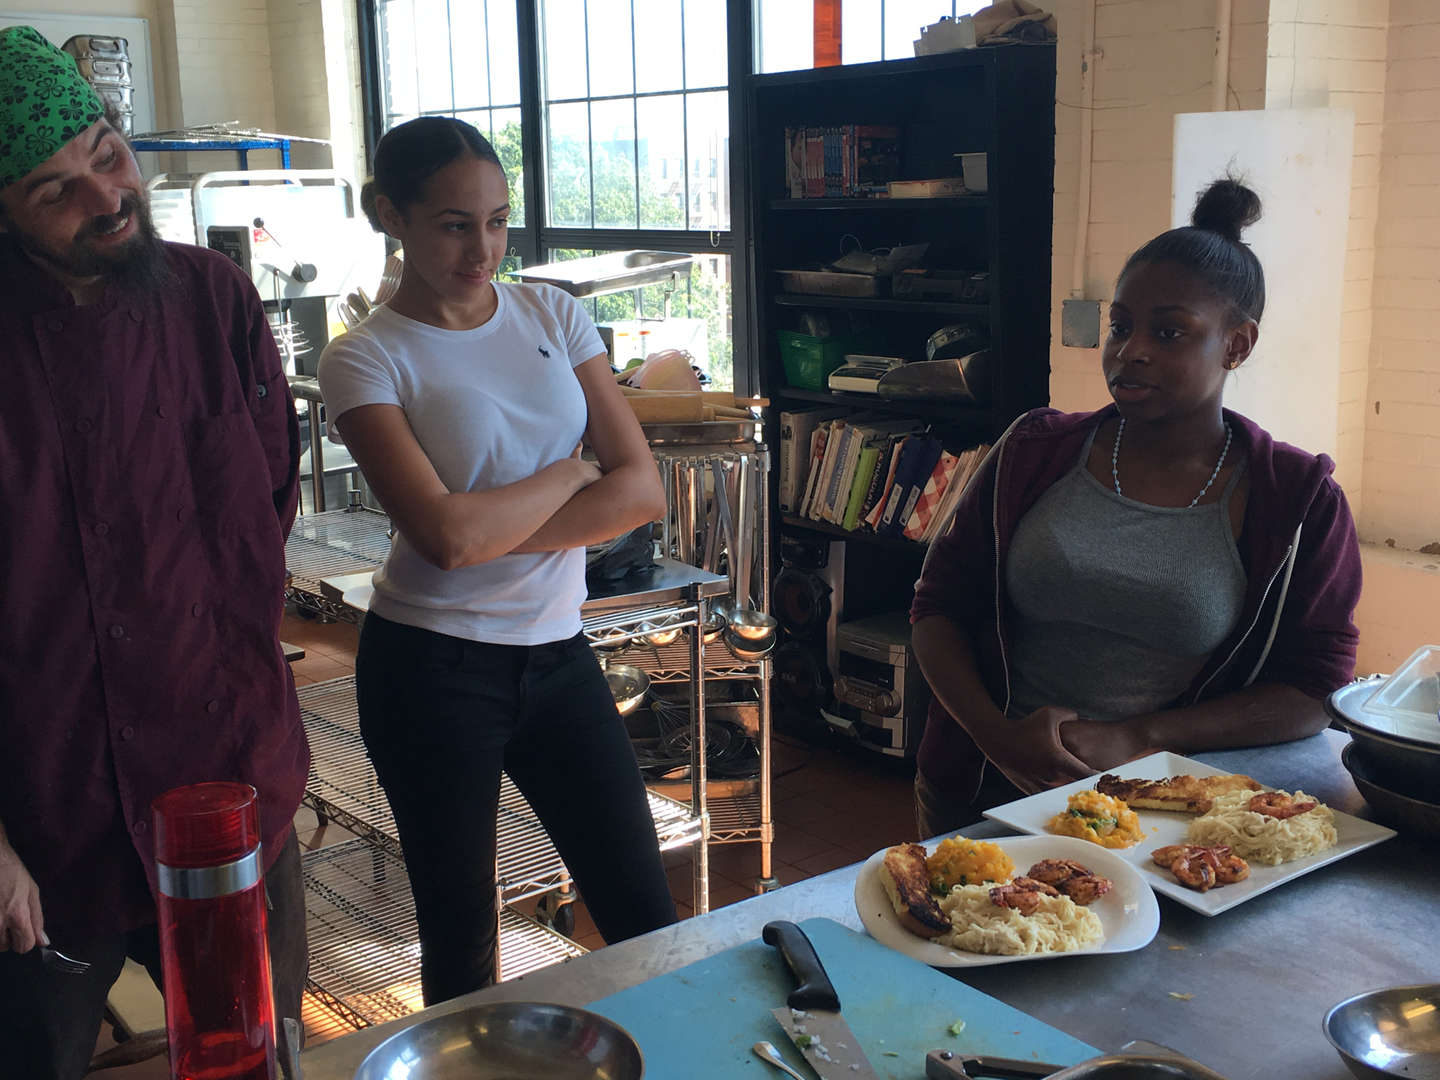 Culinary students Crystal Lee Aulet and Queency Kelly describe their dish to Chef.